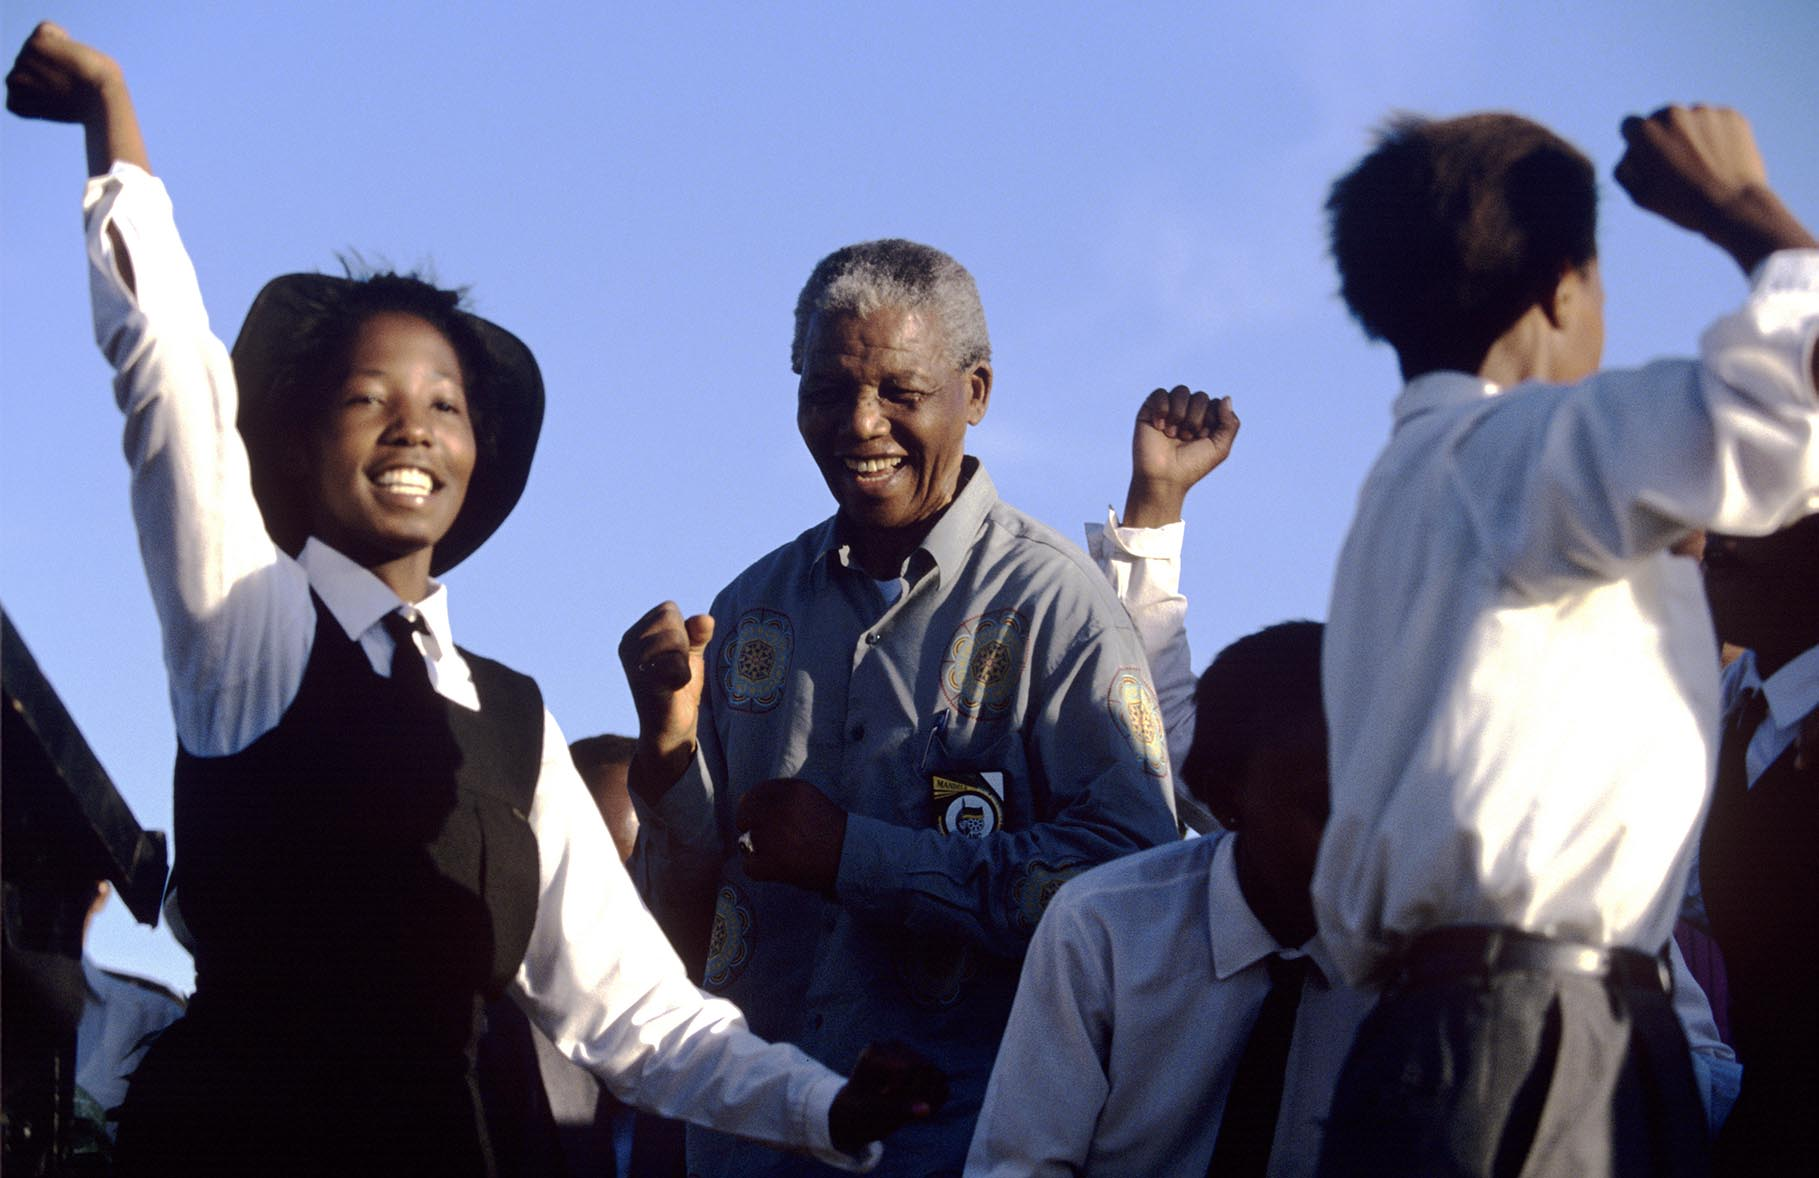 Nelson Mandela dances with school children at a campaign event. After more then 27 years in jail as an anti-apartheid activist,   Nelson Mandela lead a 1994 campaign for President as a member of the African National Congress (ANC),  in the first free elections in South Africa in 1994.  Mandela has received more than 250 awards over four decades, including the 1993 Nobel Peace Prize.